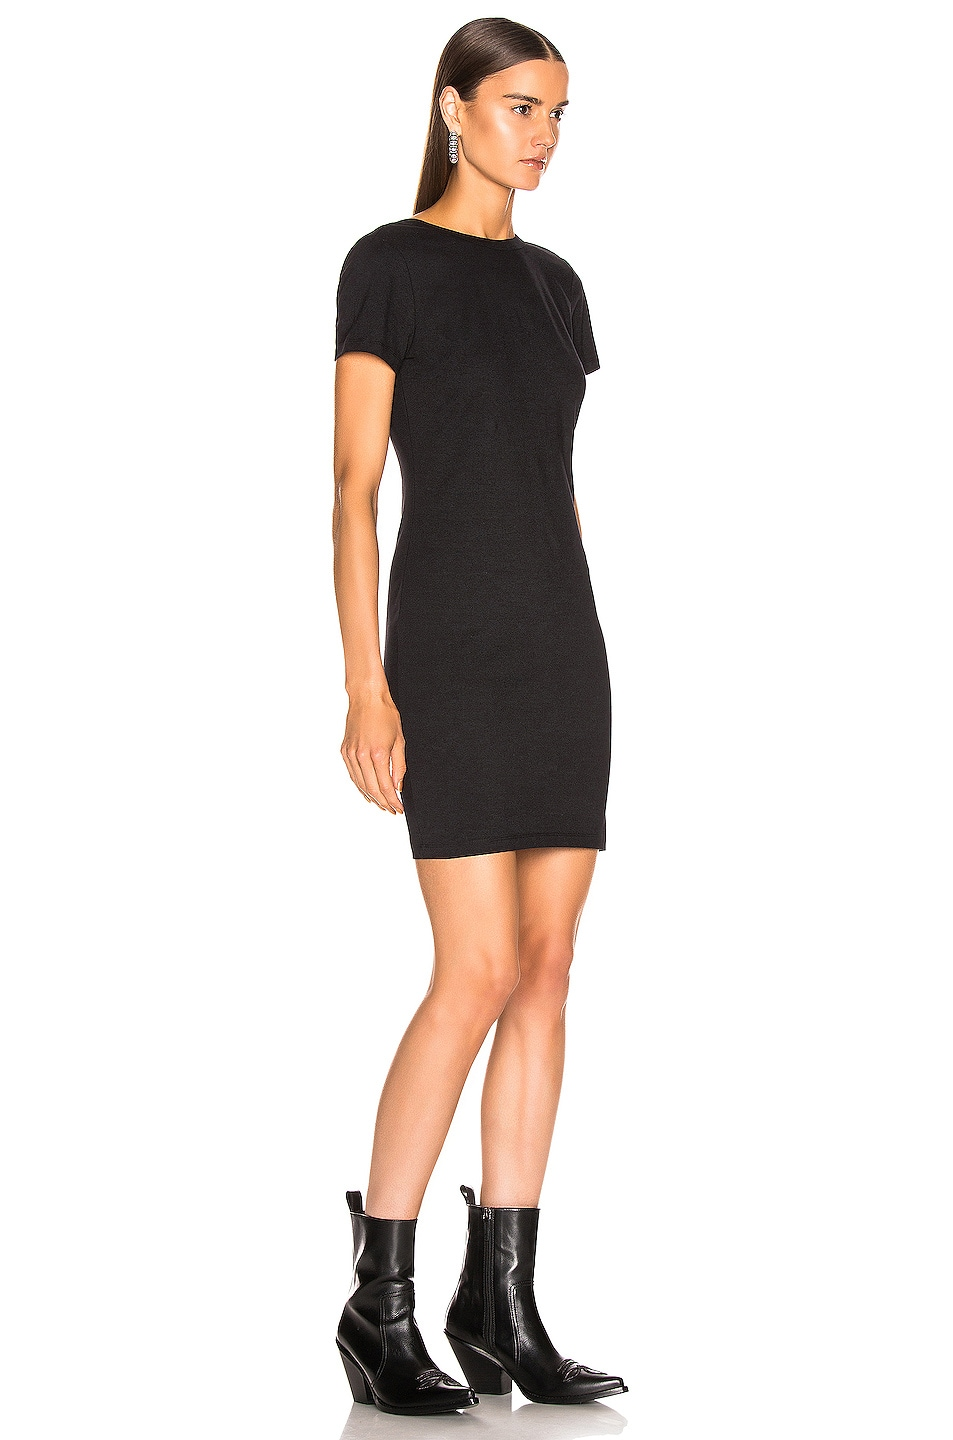 Image 4 of T by Alexander Wang Snaps Dress in Black